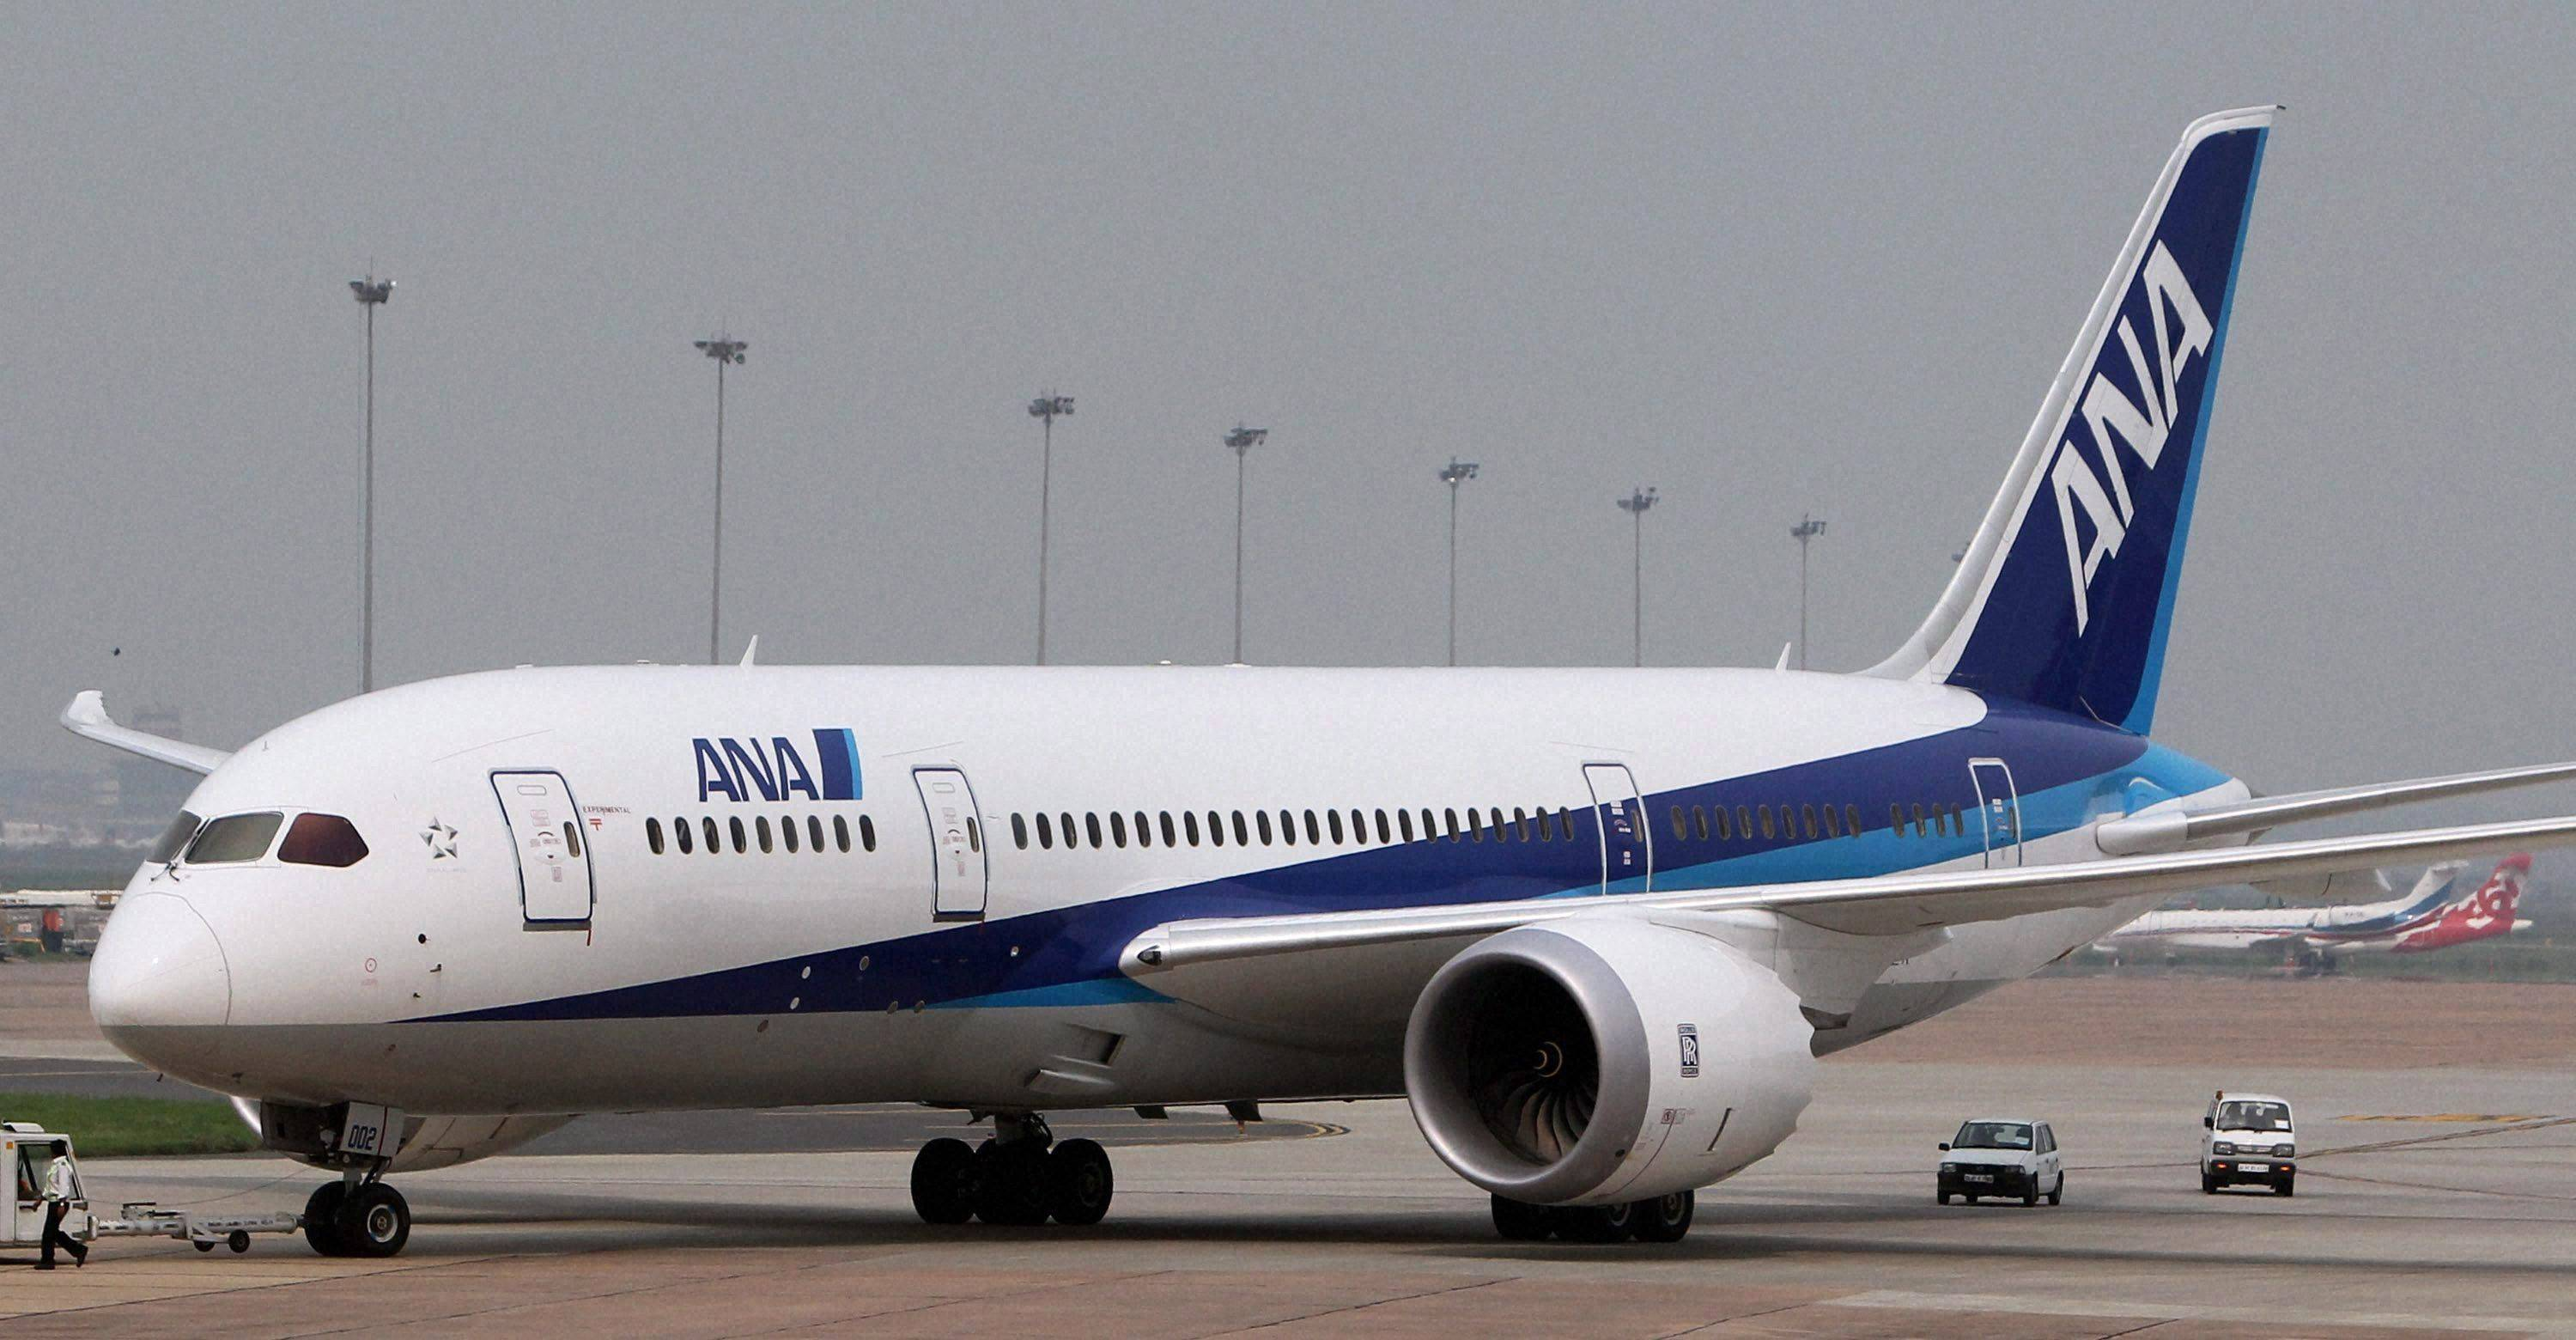 Associated Press/July 13 The Boeing 787 Dreamliner taxis on the runway at the Indira Gandhi International Airport in New Delhi.